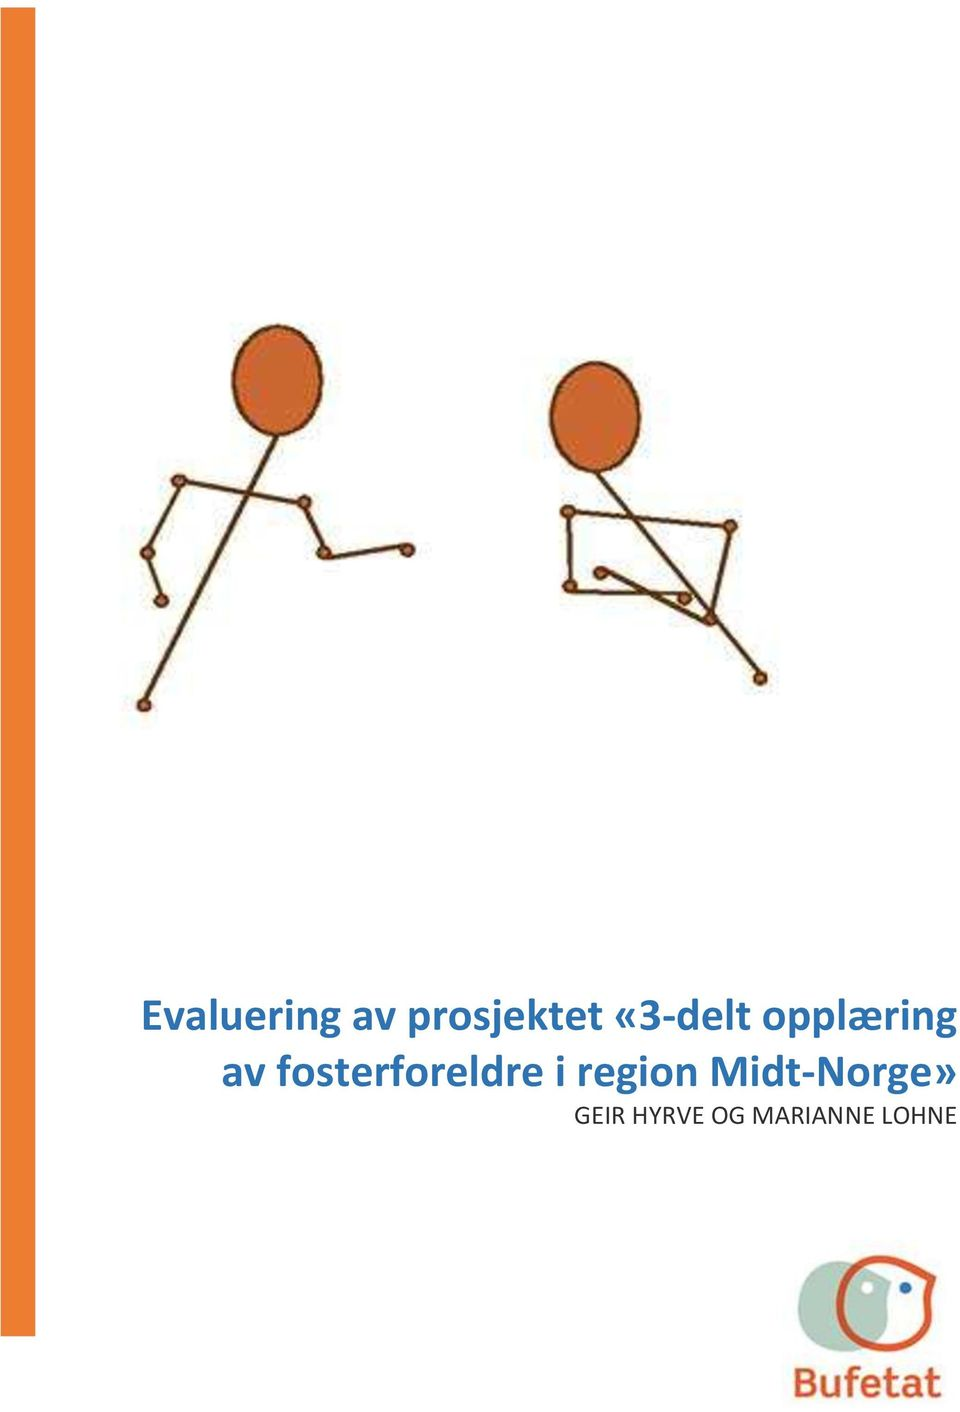 fosterforeldre i region